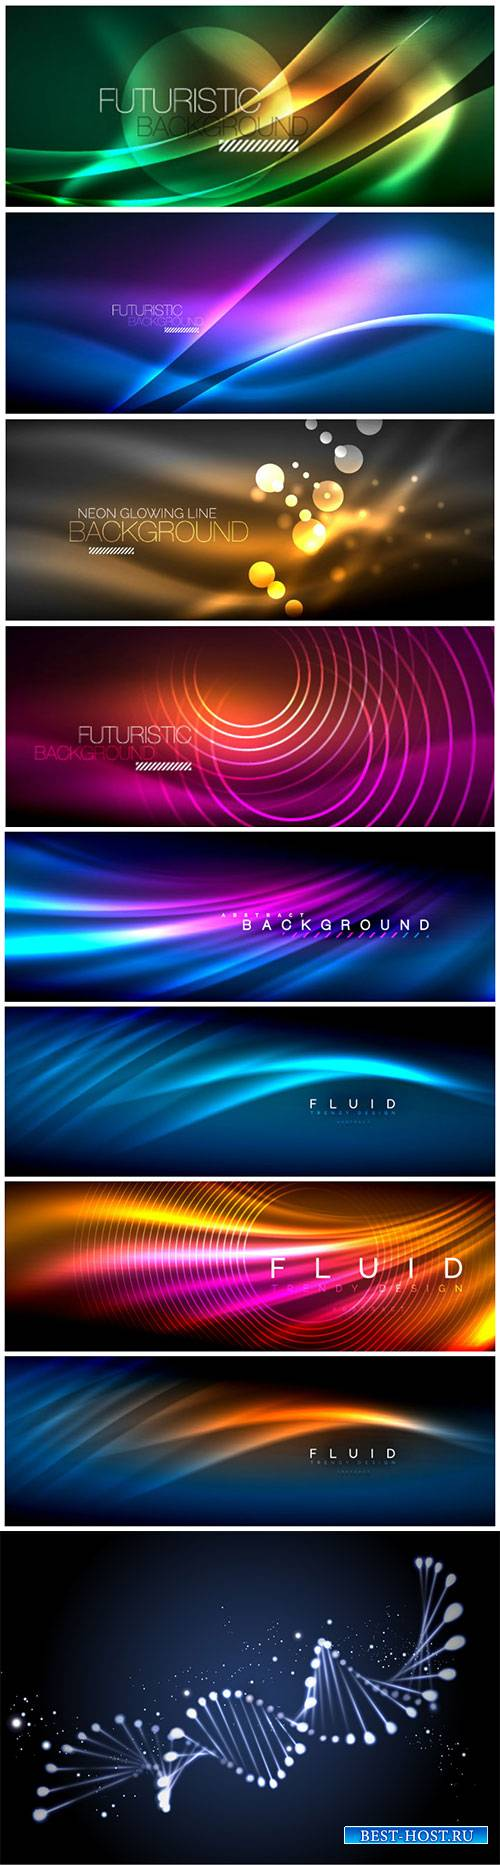 Glowing waves vector background